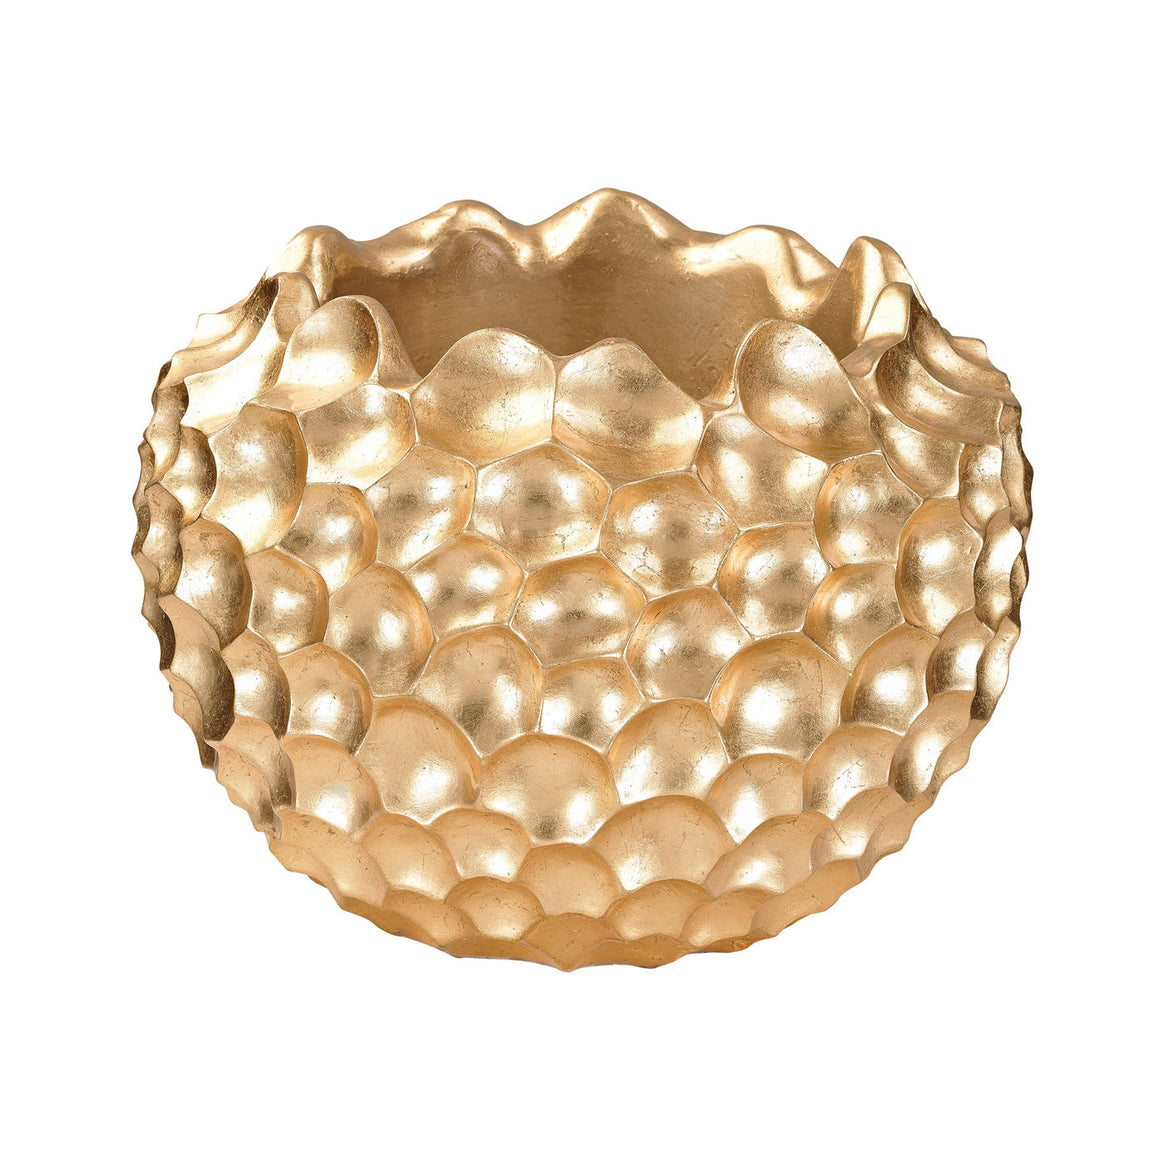 Coral Texture Vessel 9166-030 by Dimond Home